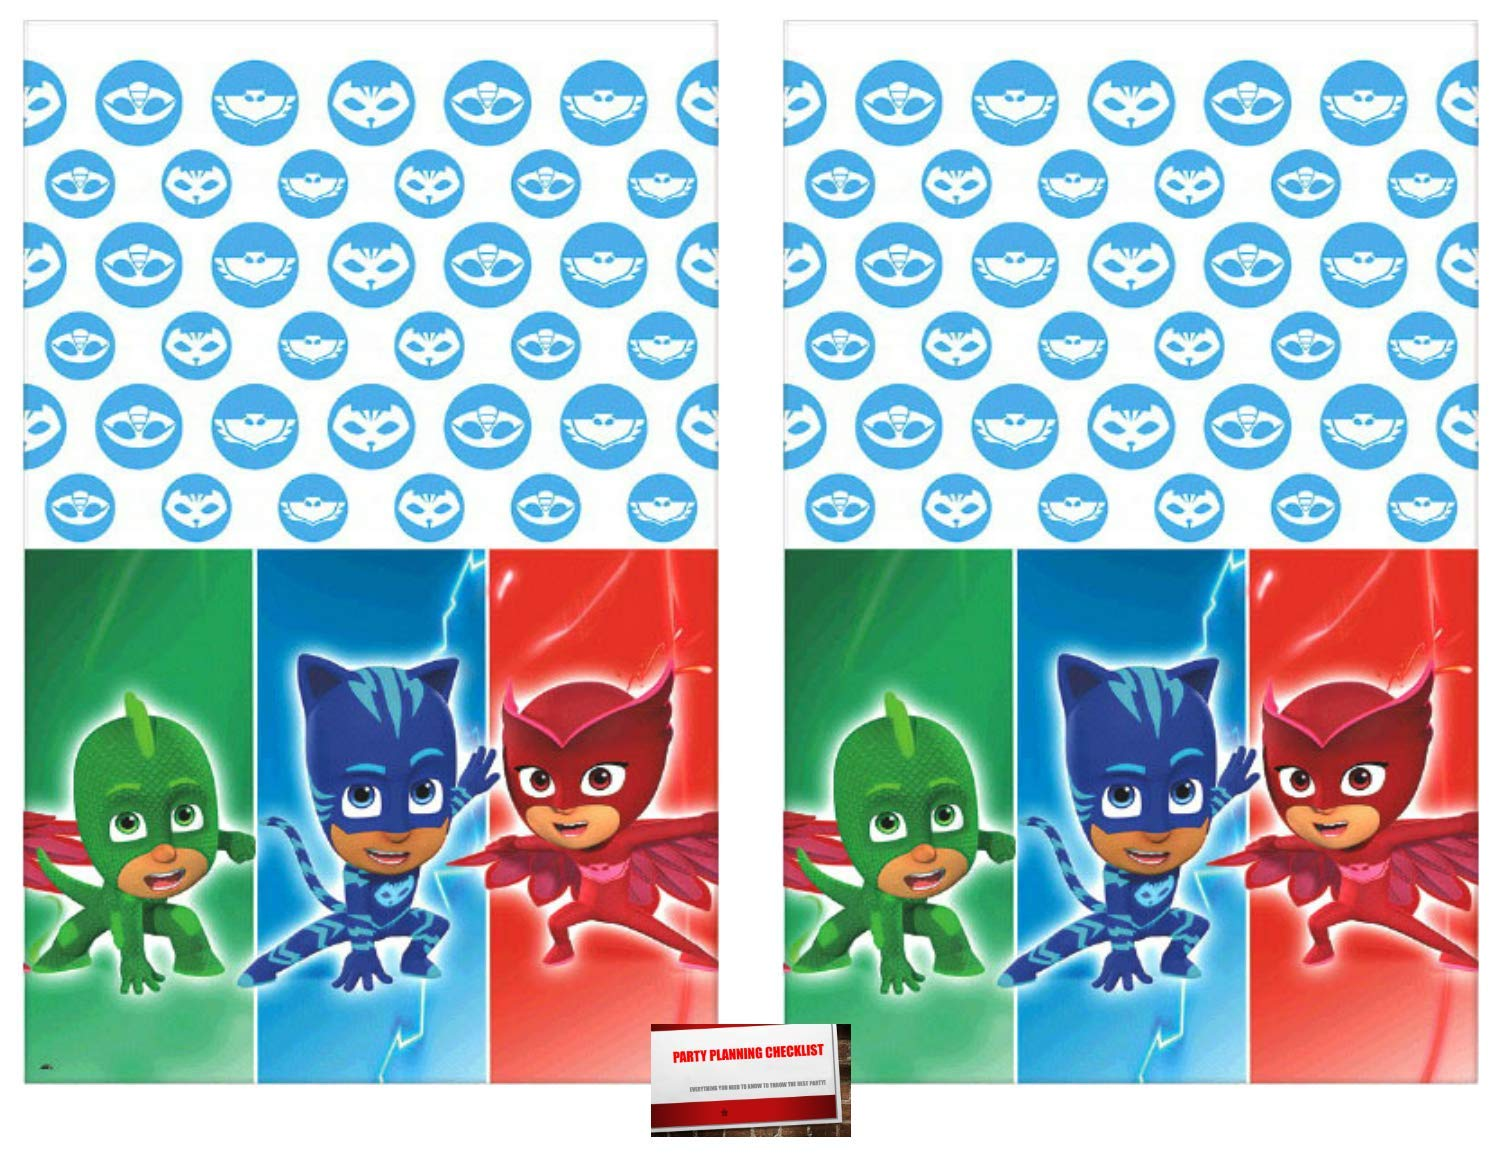 2 Pack - PJ Masks Party Plastic Table Cover 54 x 96 inches (Plus Party Planning Checklist by Mikes Super Store)